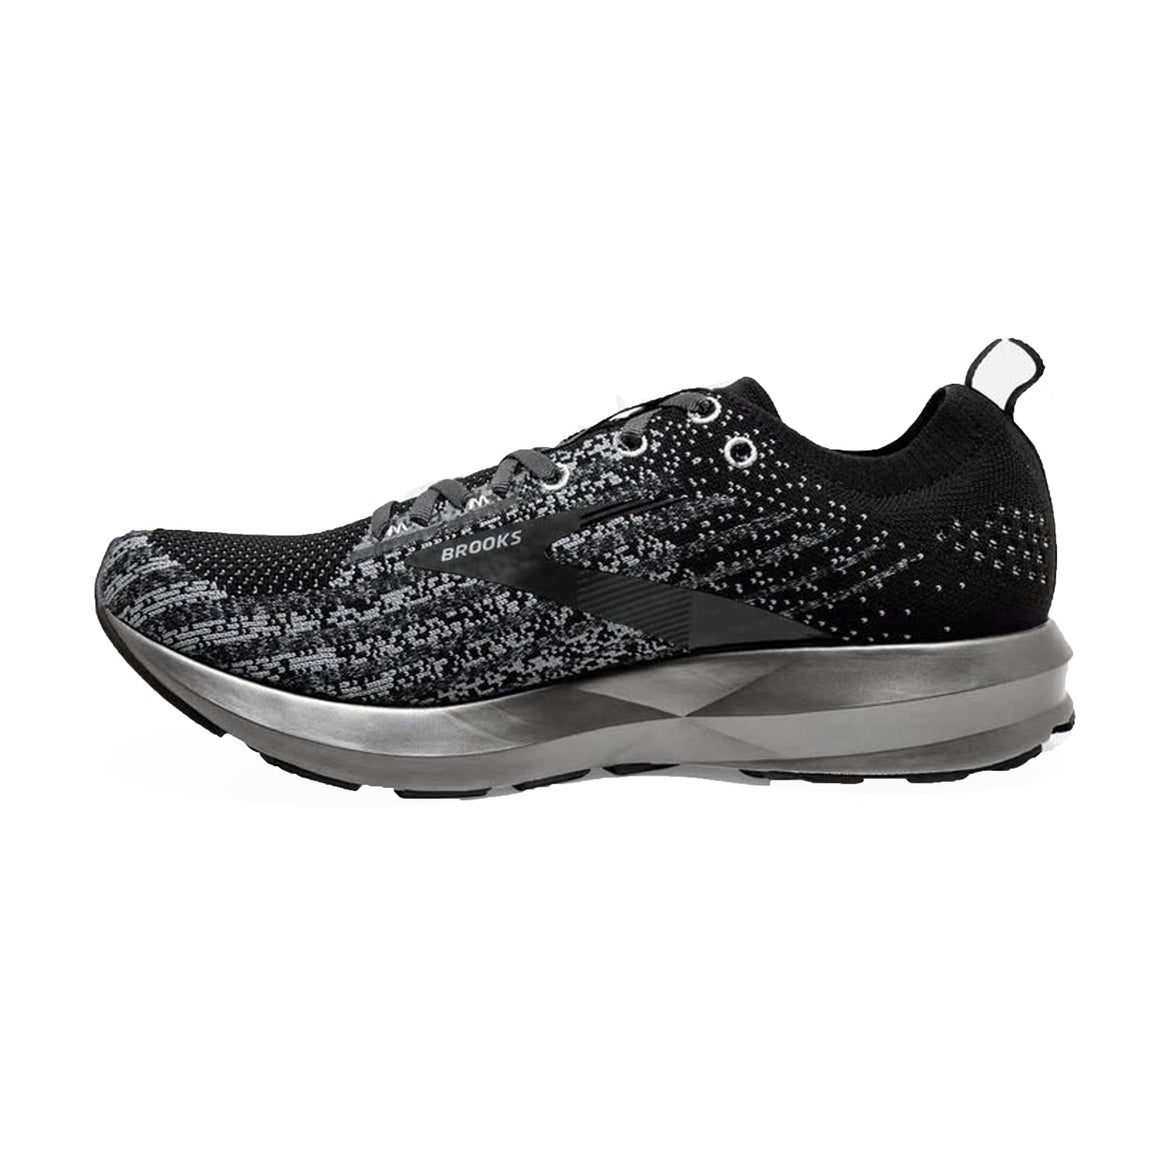 Levitate 3 Running Shoes for Women in Black & Silver